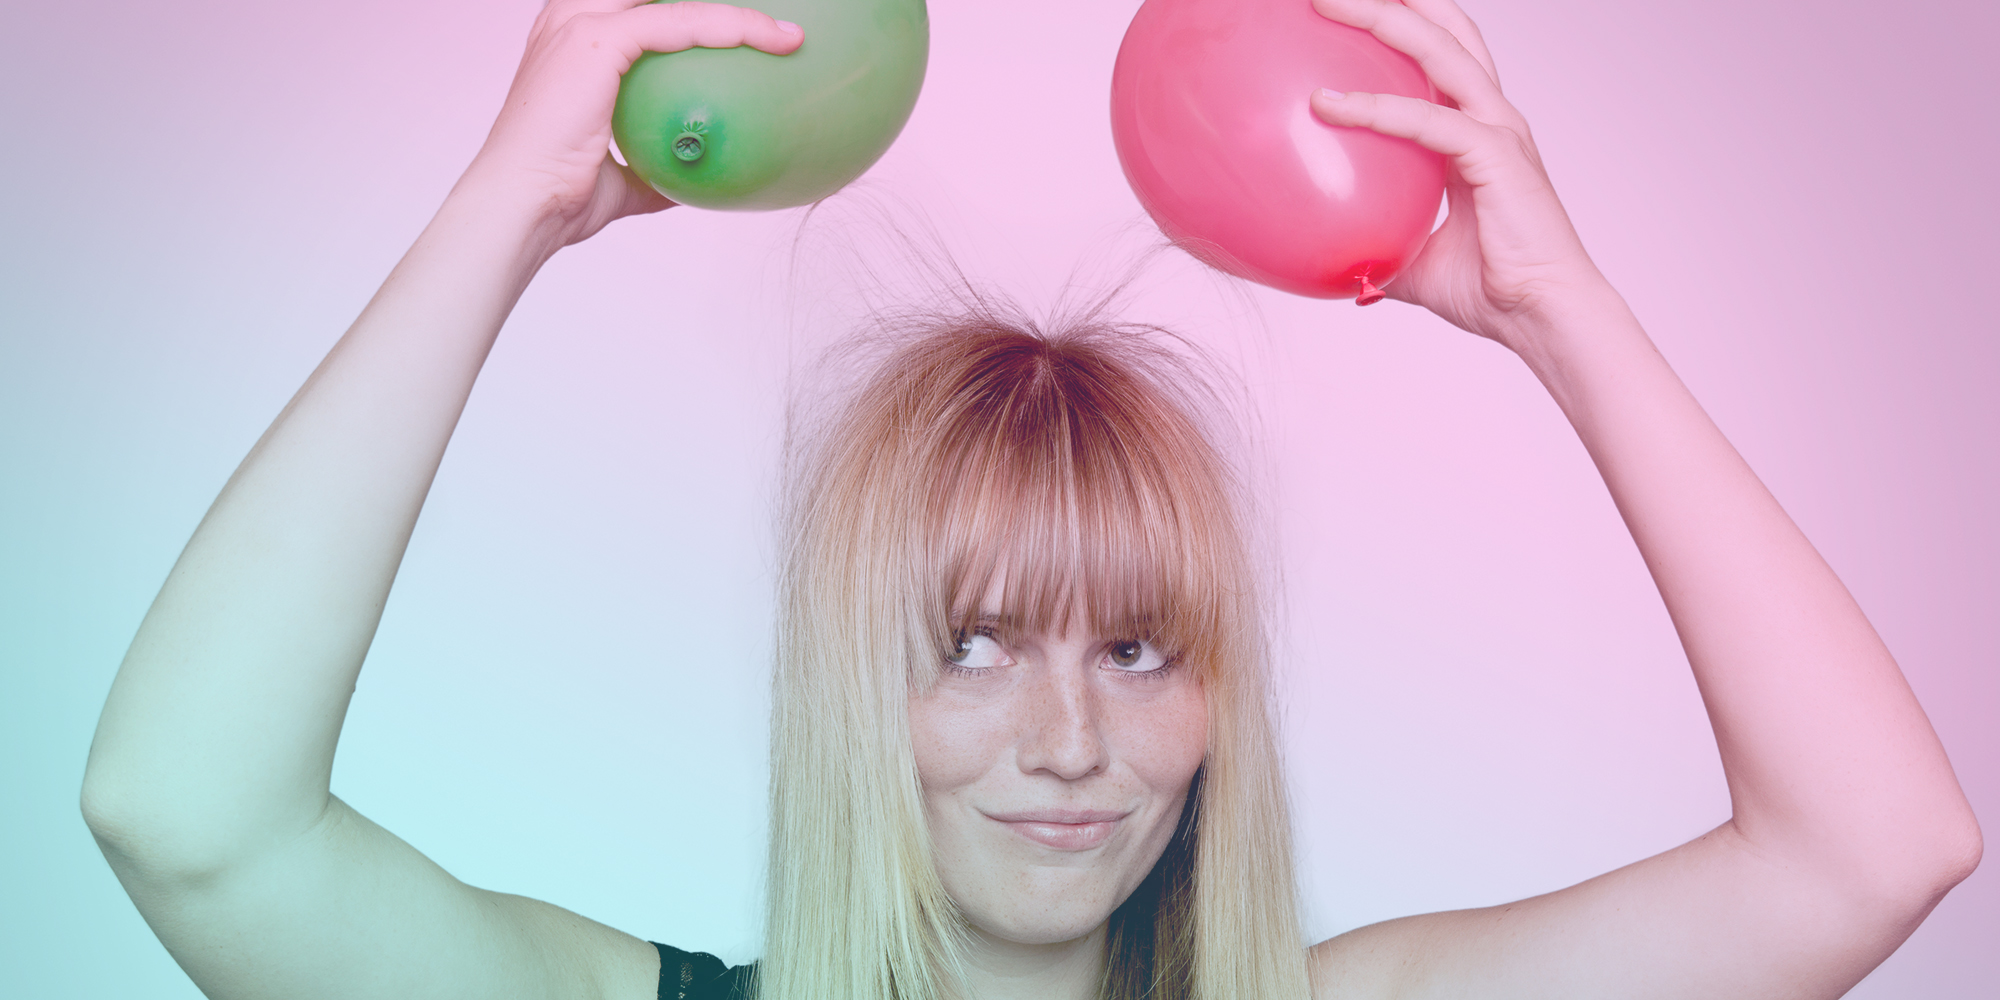 Woman with electrically-charged balloons stuck to hair